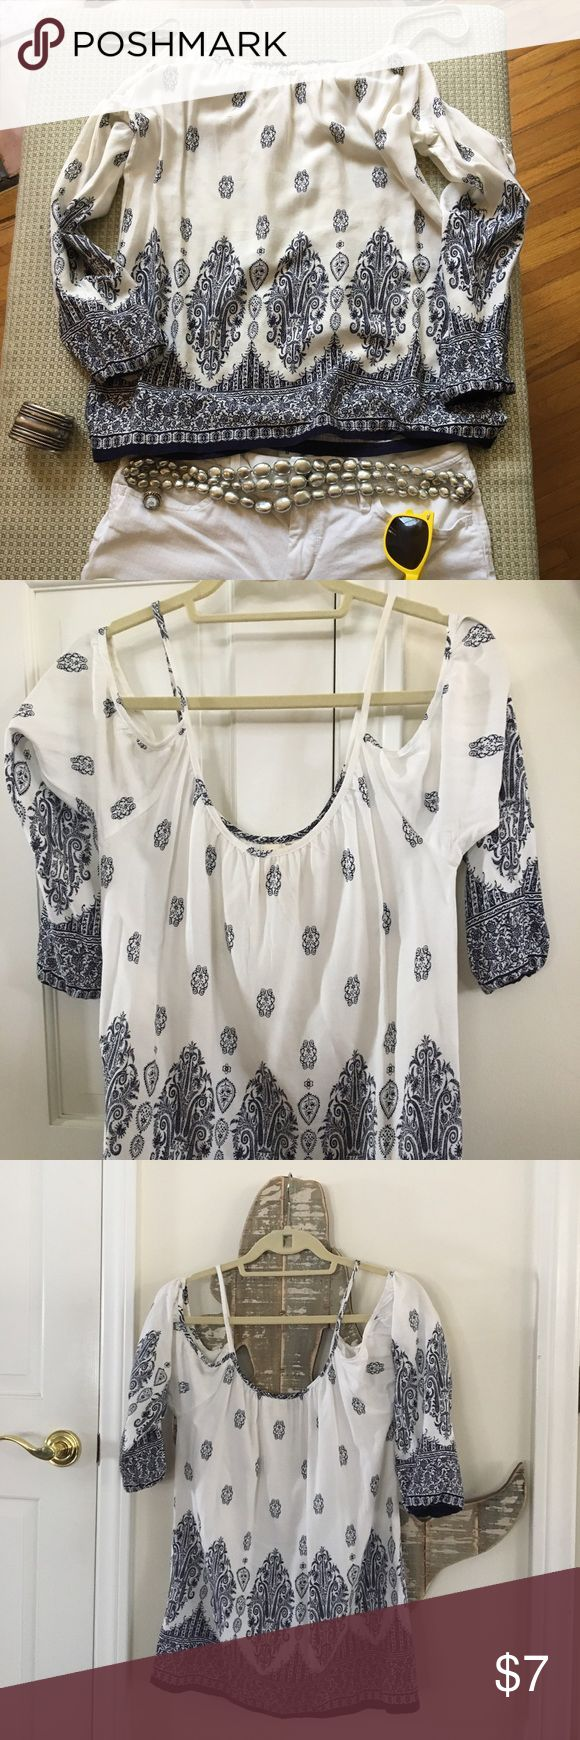 Paisley Blue and White Cold Shoulder Top Ideal with white jeans or maybe even a cute pair of red shorts for Independence Day! This has never been worn and is from a pet free smoke free home. Hit me up with any questions and I'm more than happy to answer!! Tops Blouses